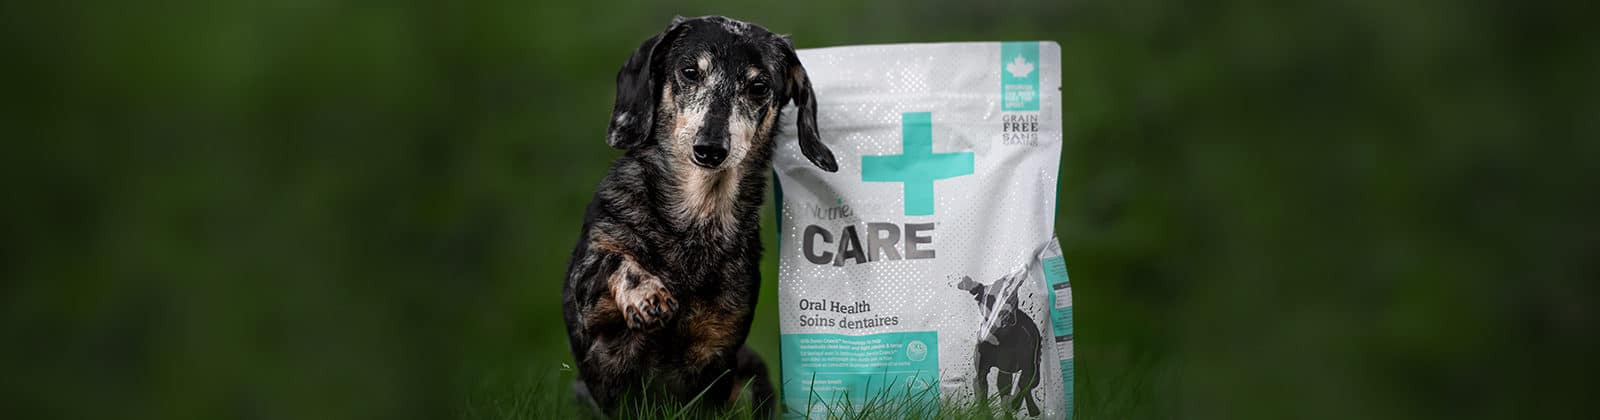 Nutrience Care Oral Health for dogs